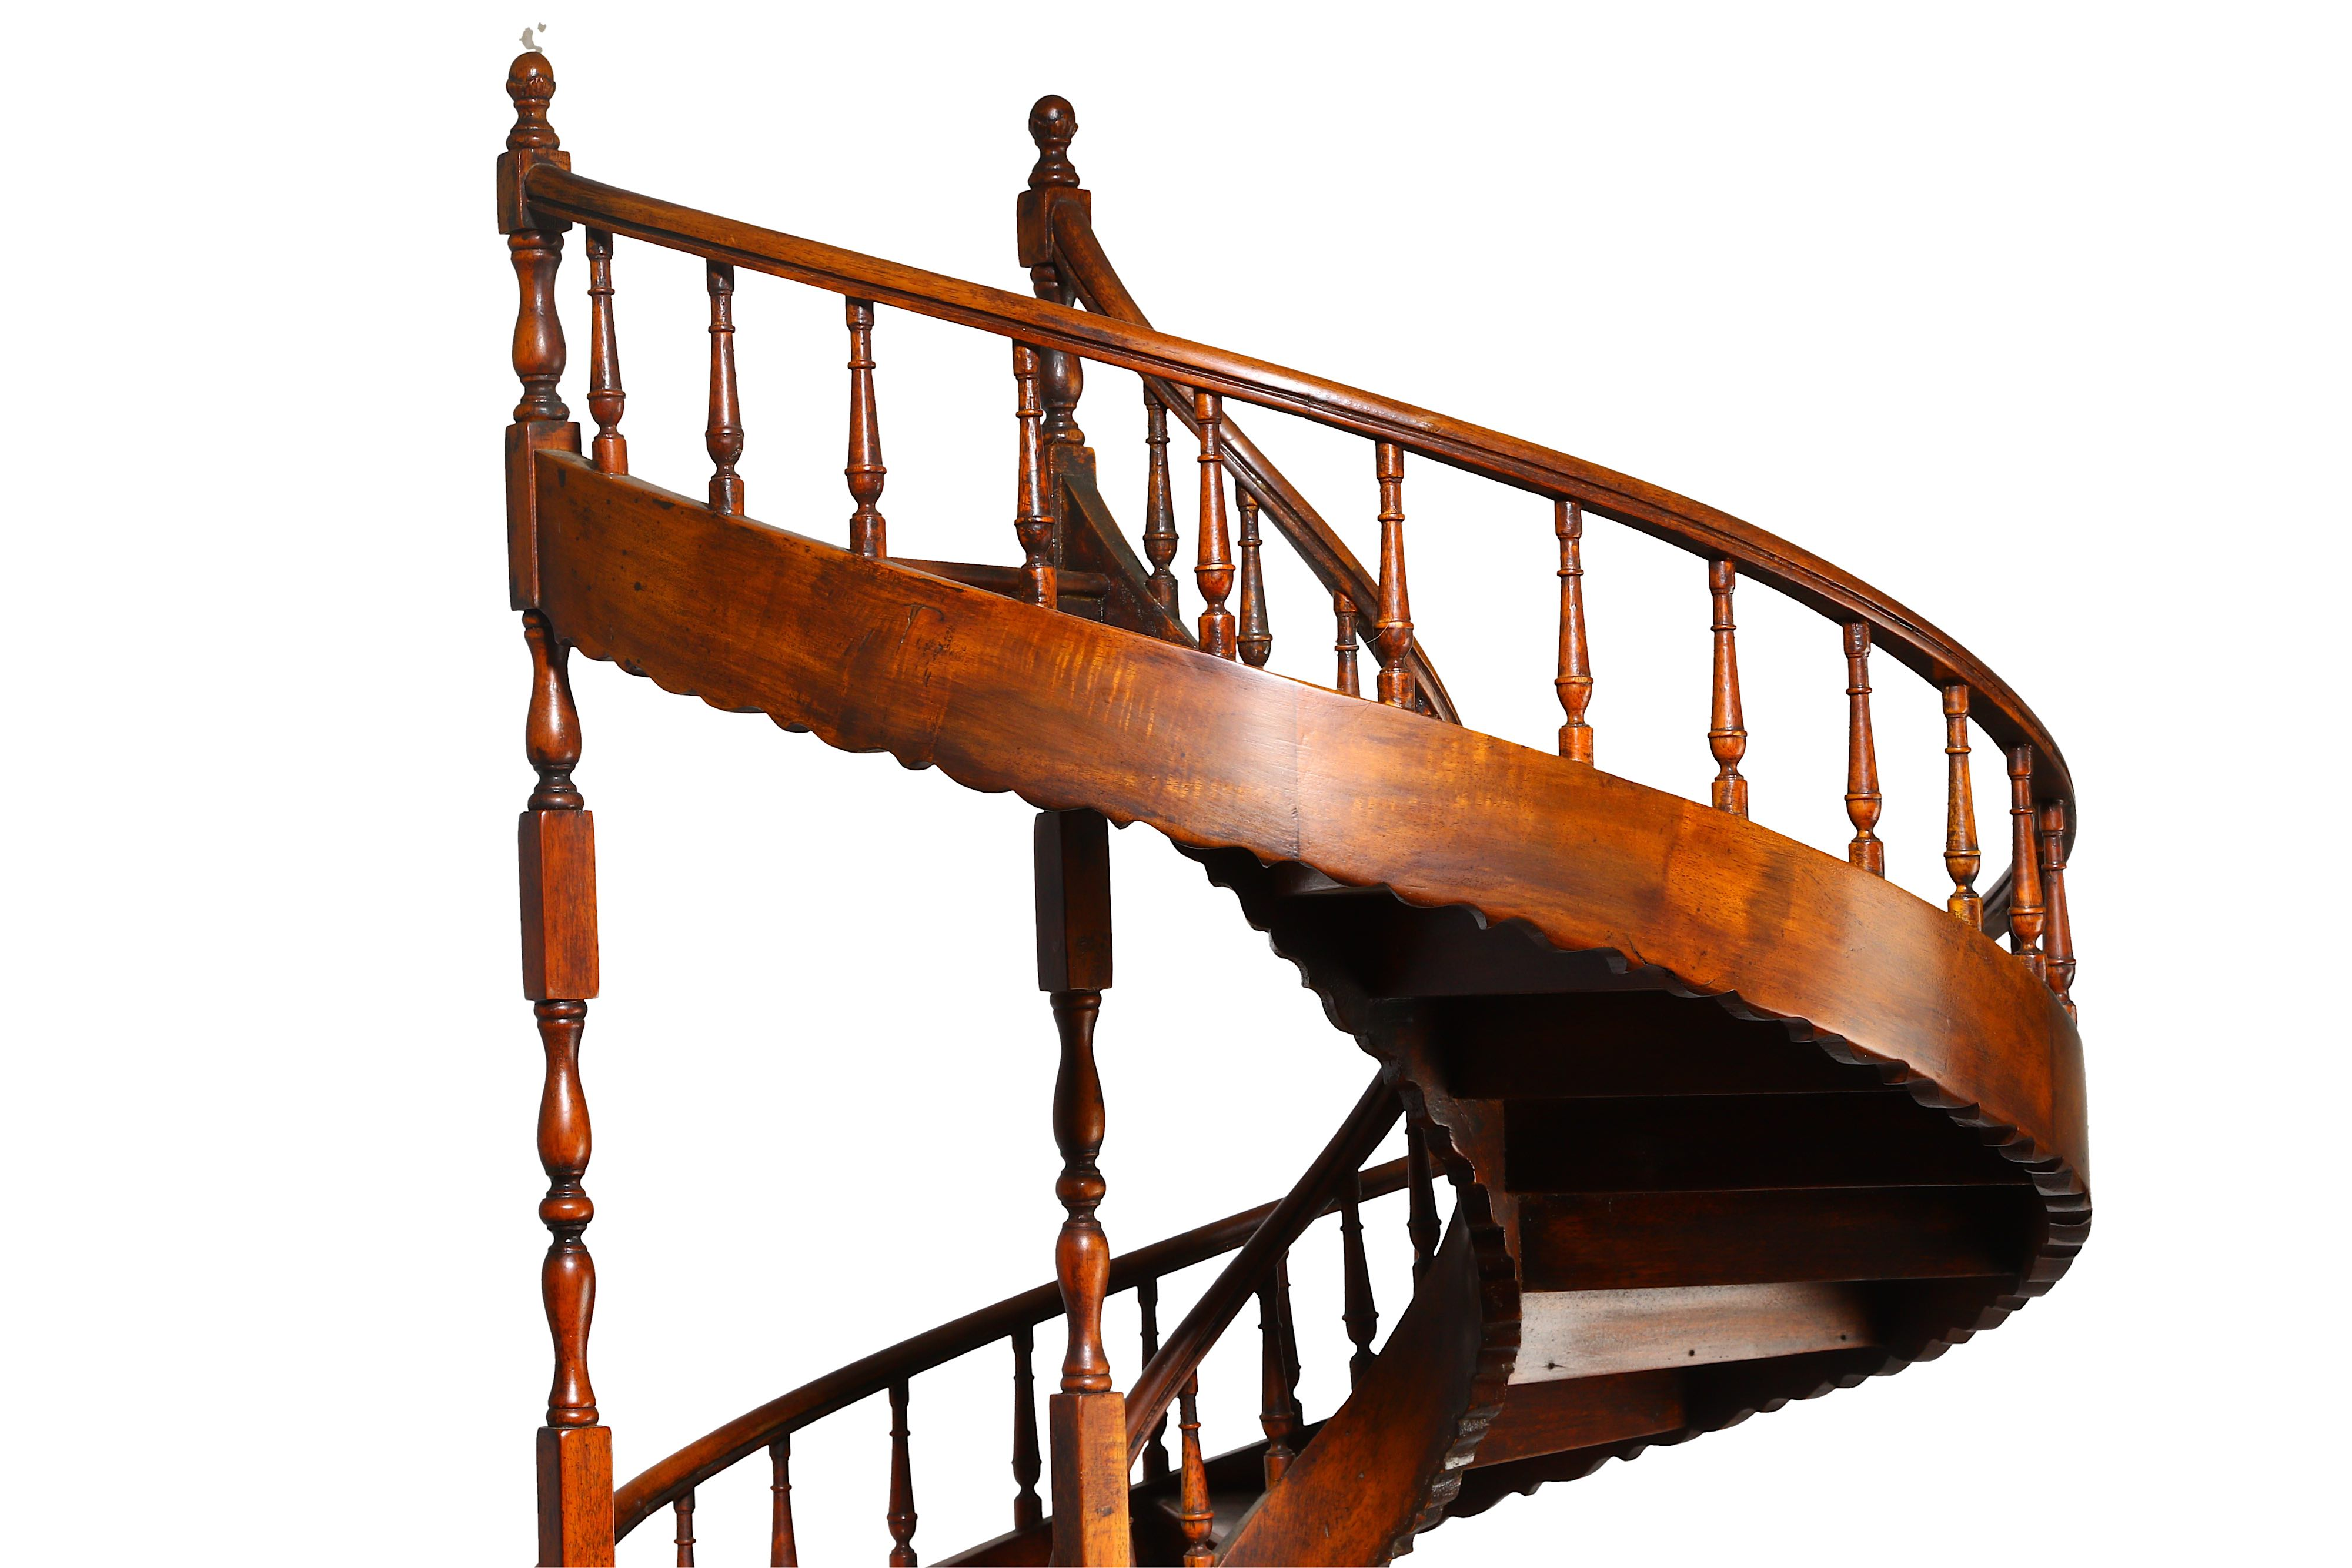 A LARGE EARLY 20TH CENTURY MAHOGANY APPRENTICE'S ARCHITECTURAL MODEL OF A SPIRAL STAIRCASE - Image 6 of 9